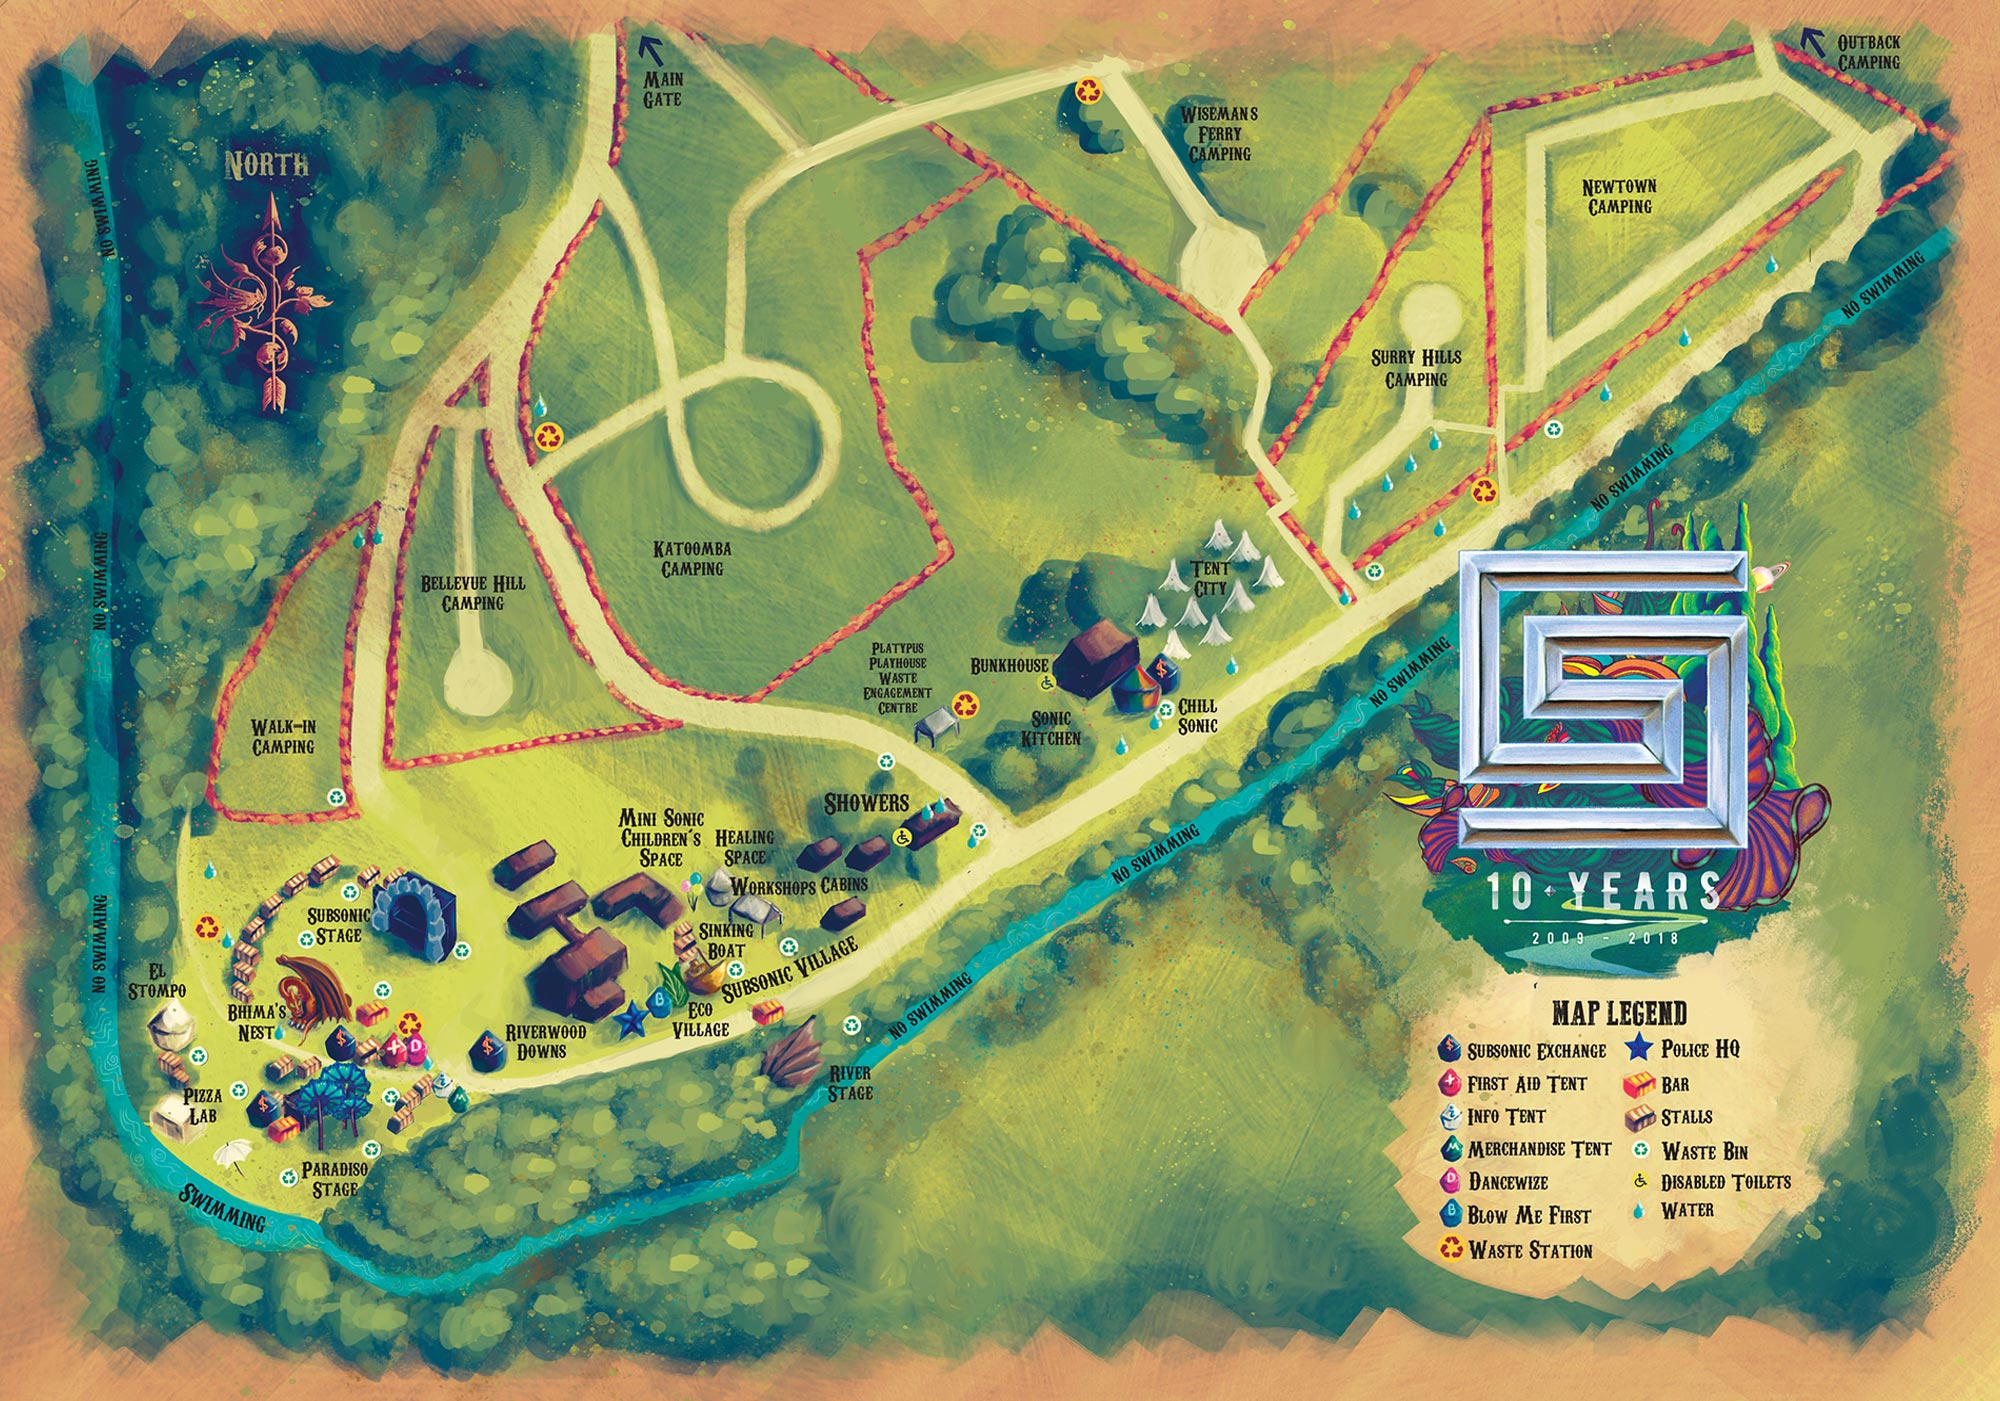 Subsonic Music Festival 2018 - Festival Site Map